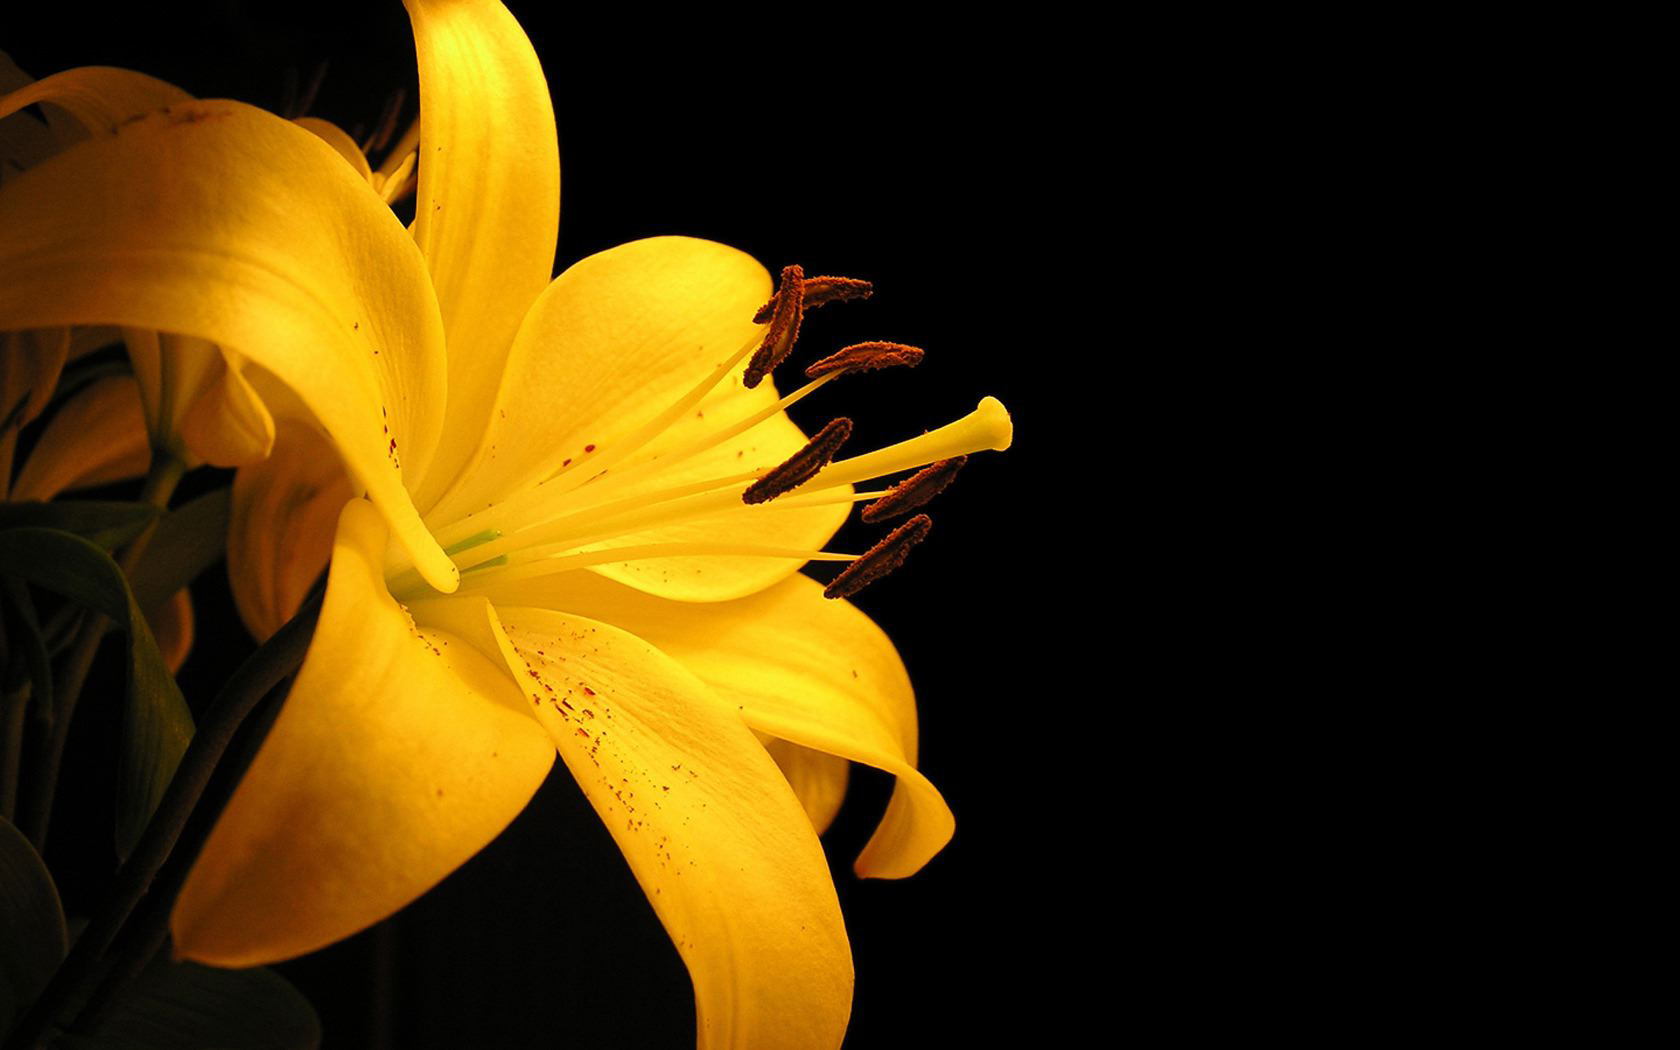 Yellow Flowers Best Quality Download High Resolution Amp Hd Wallpapers 1680x1050px